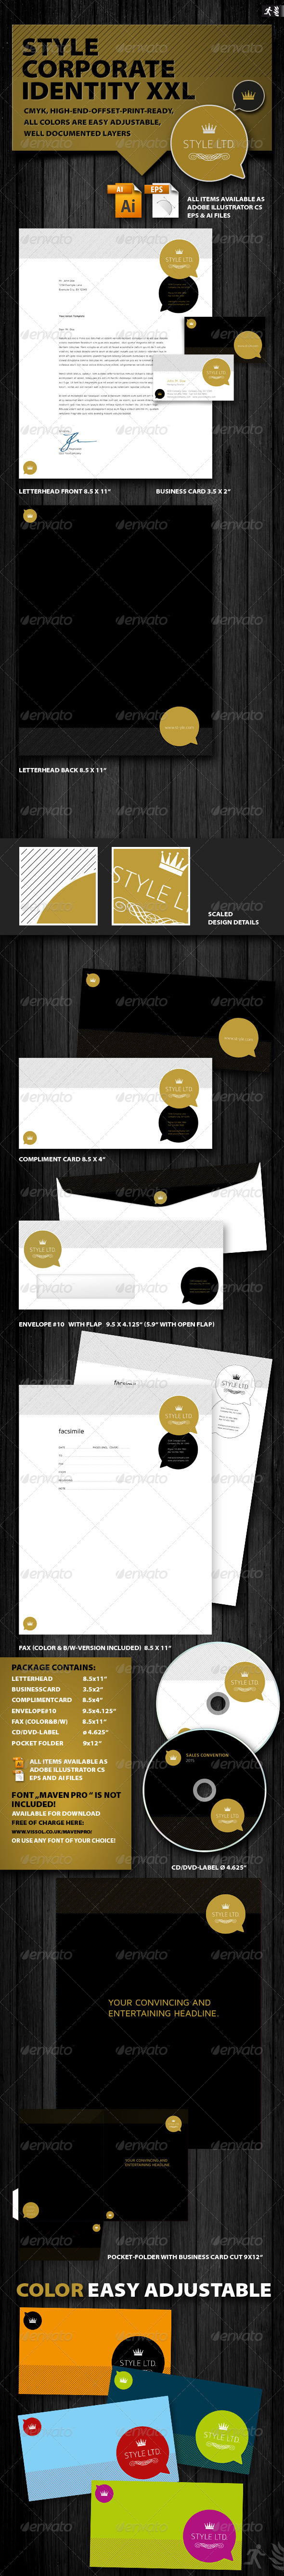 Style Corporate Identity XXL - Stationery Print Templates